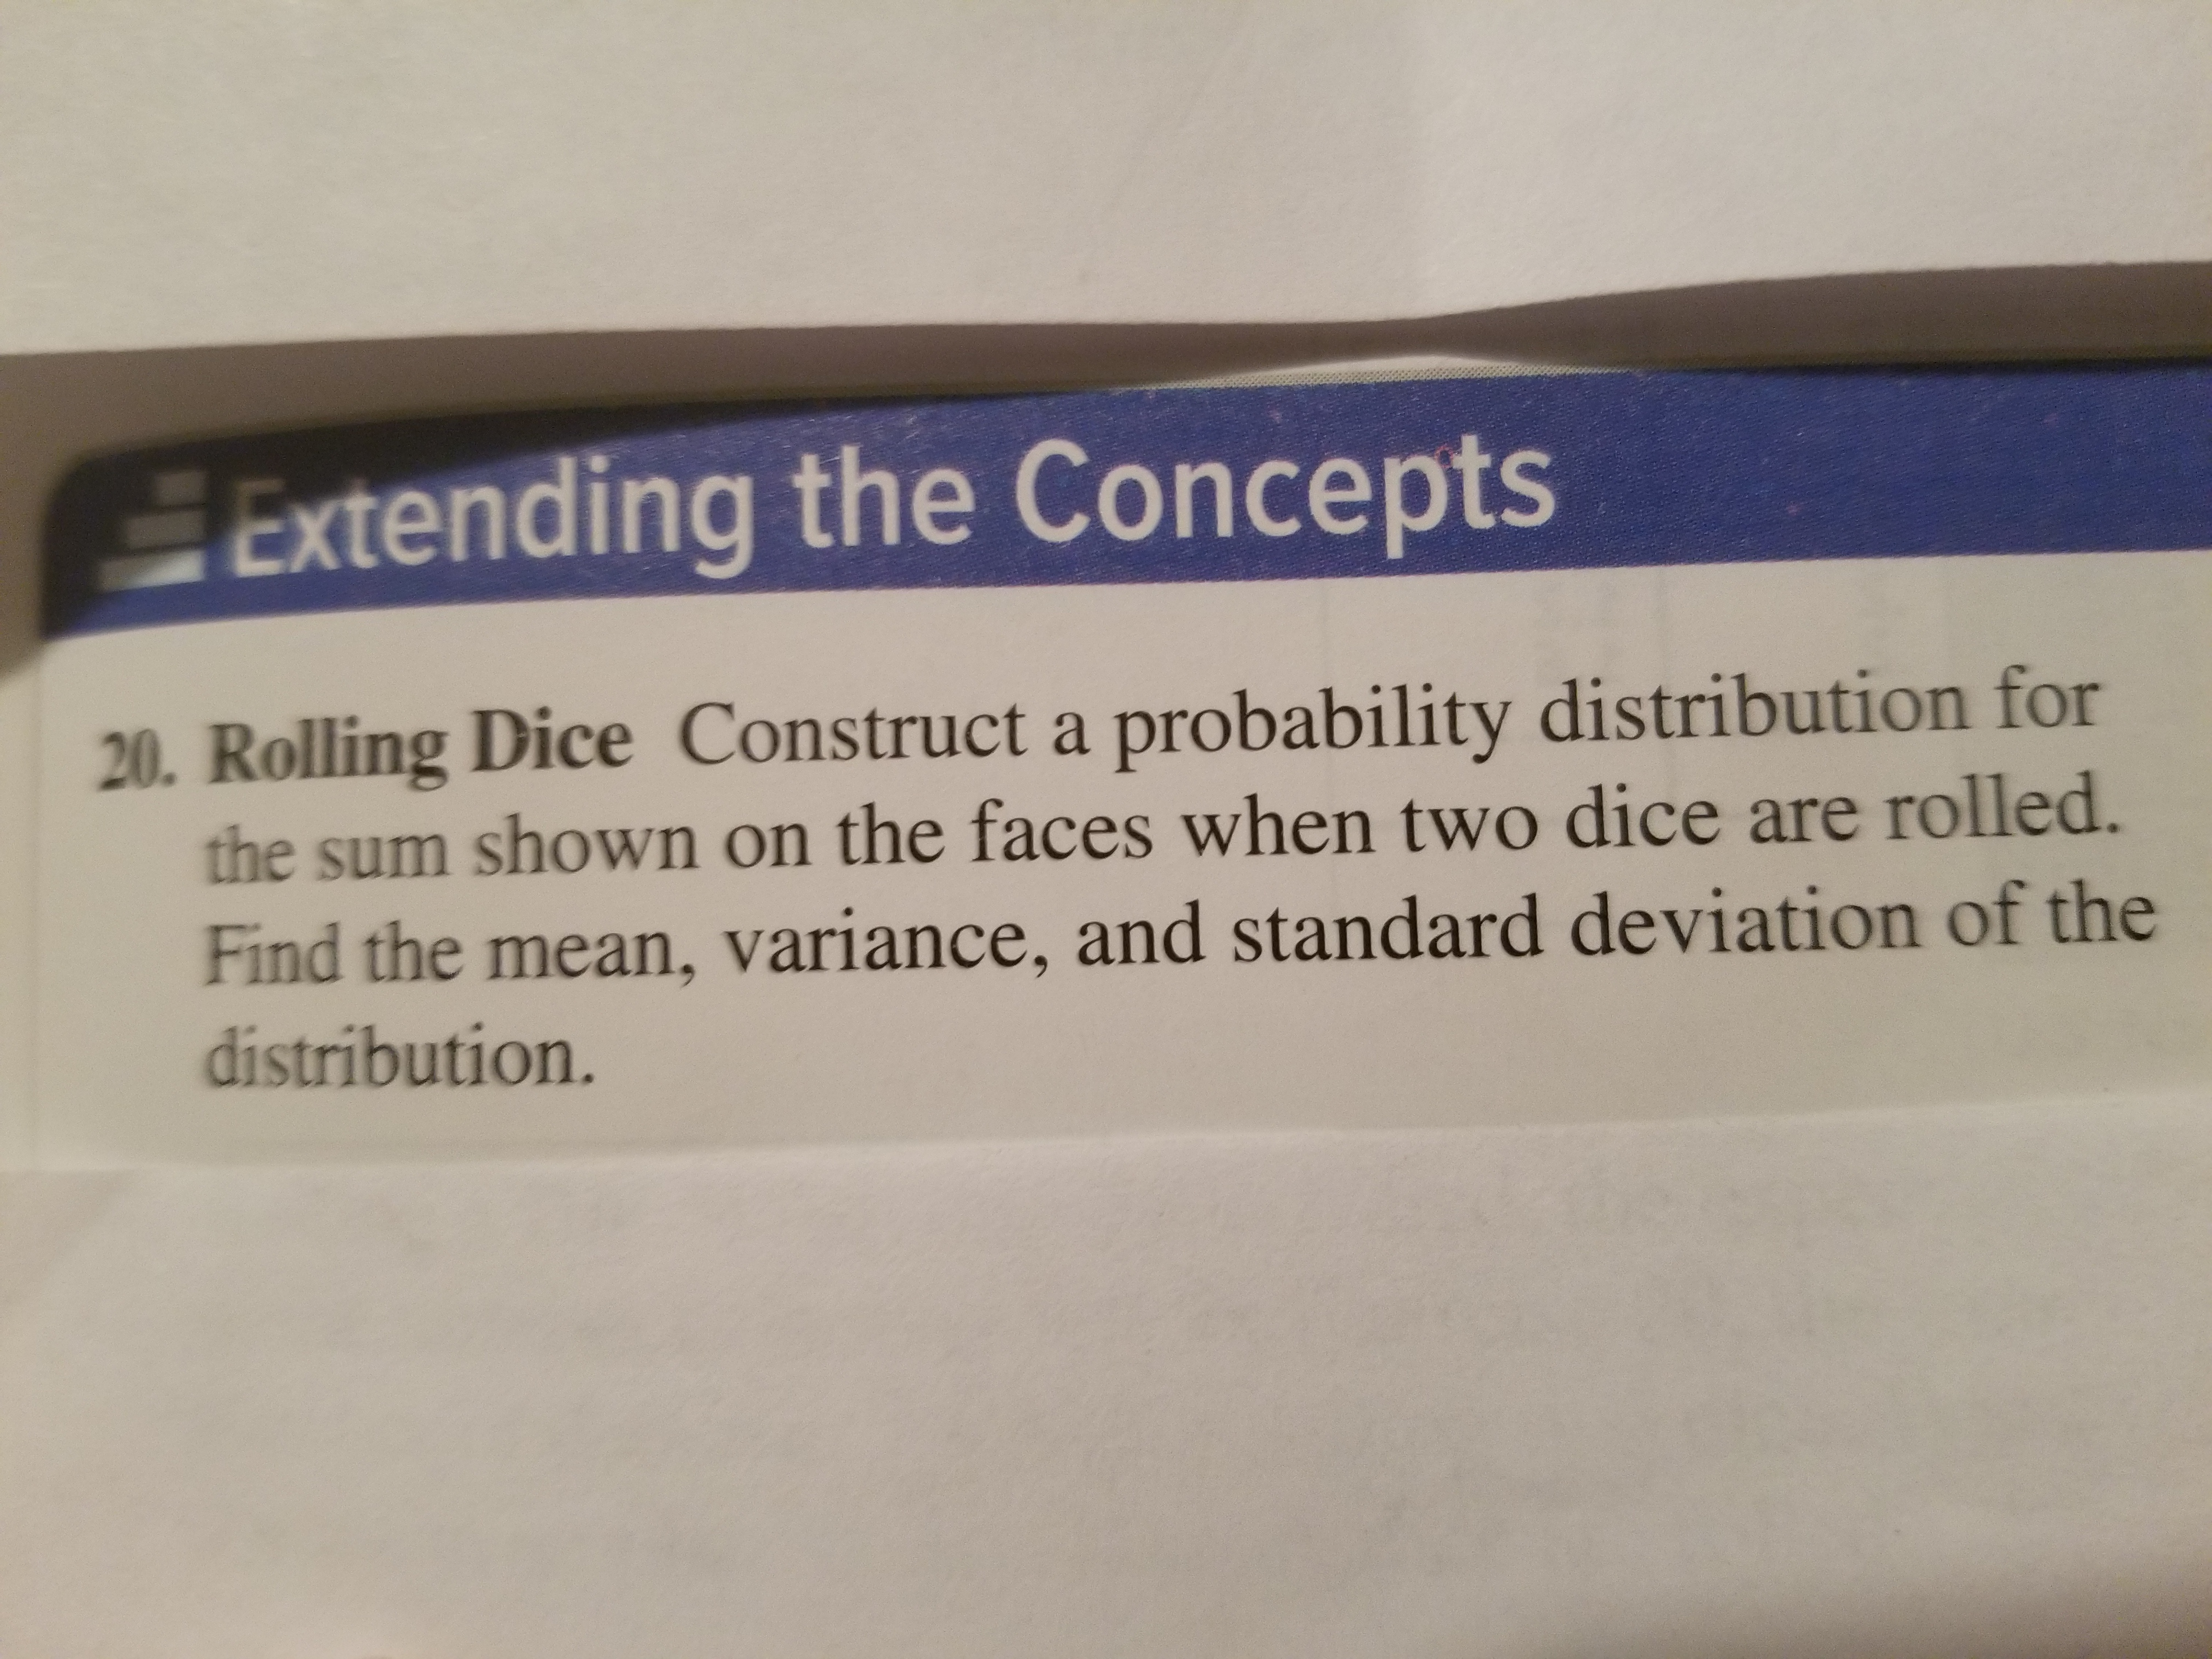 Extending the Concepts 20. Rolling Dice Construct a probability distribution for the sum shown on the faces when two dice are rolled. Find the mean, variance, and standard deviation of the distribution.